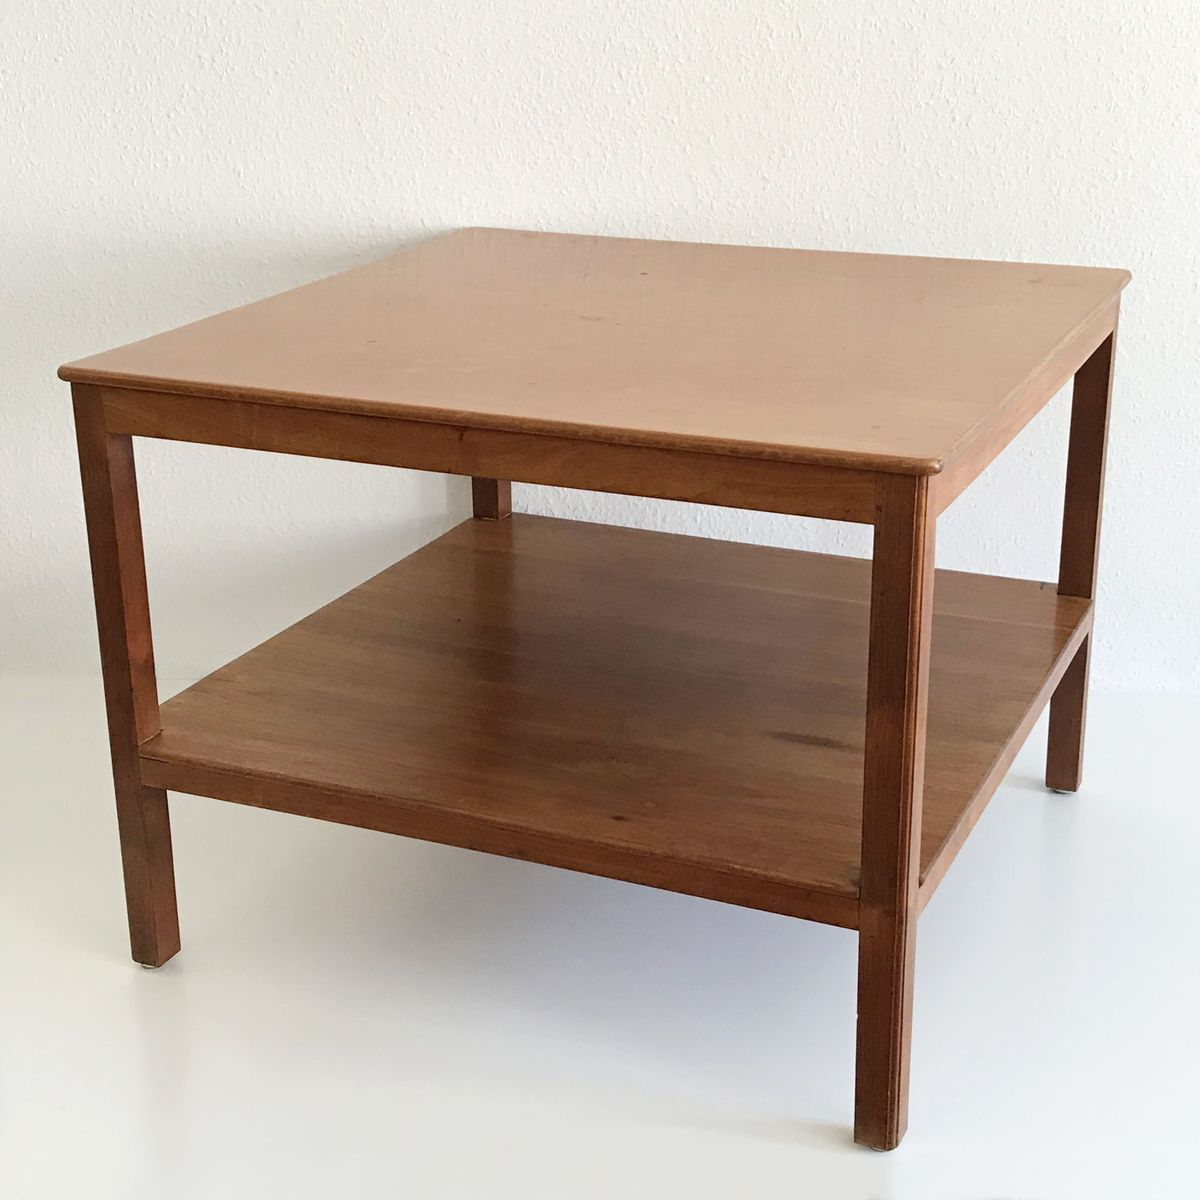 Danish Minimalist Coffee Tablekaare Klint For Rud Rasmussen For Current Minimalist Coffee Tables (Gallery 3 of 20)